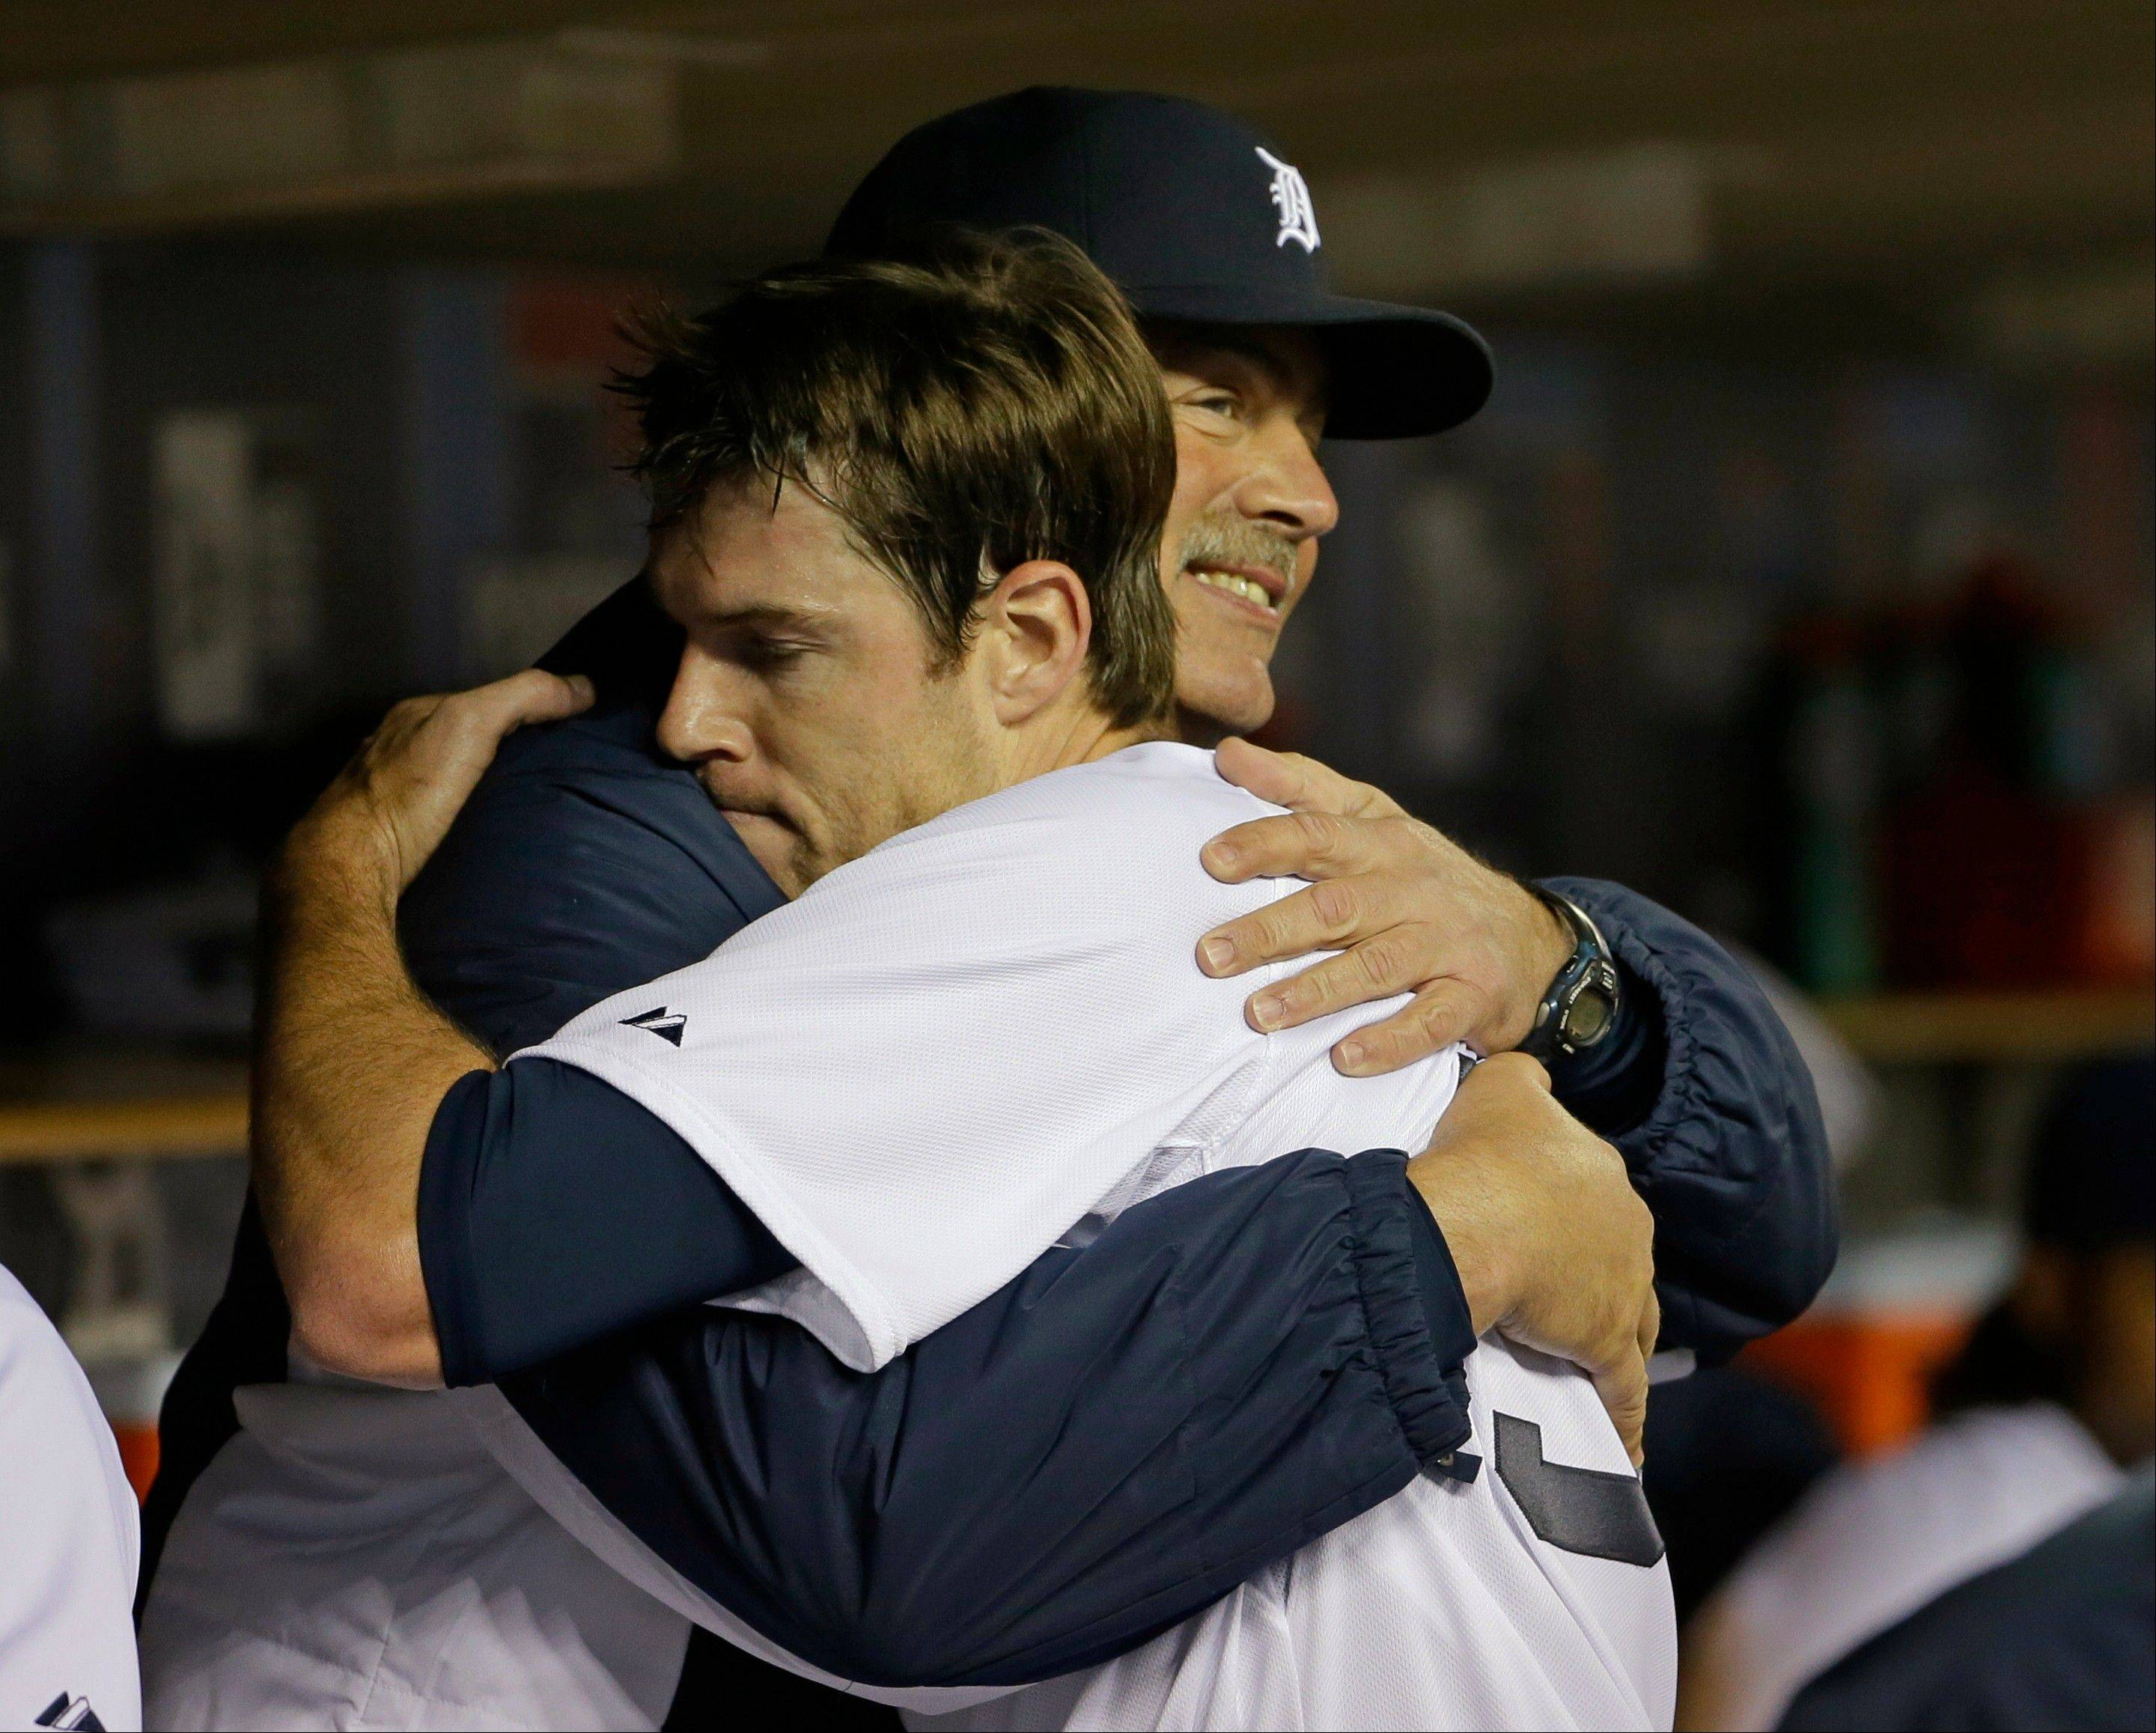 Detroit starting pitcher Doug Fister hugs pitching coach Jeff Jones after the sixth inning during Game 4 of the American League Championship Series against the Boston Red Sox. The Tigers won 7-3 Wednesday night at home.